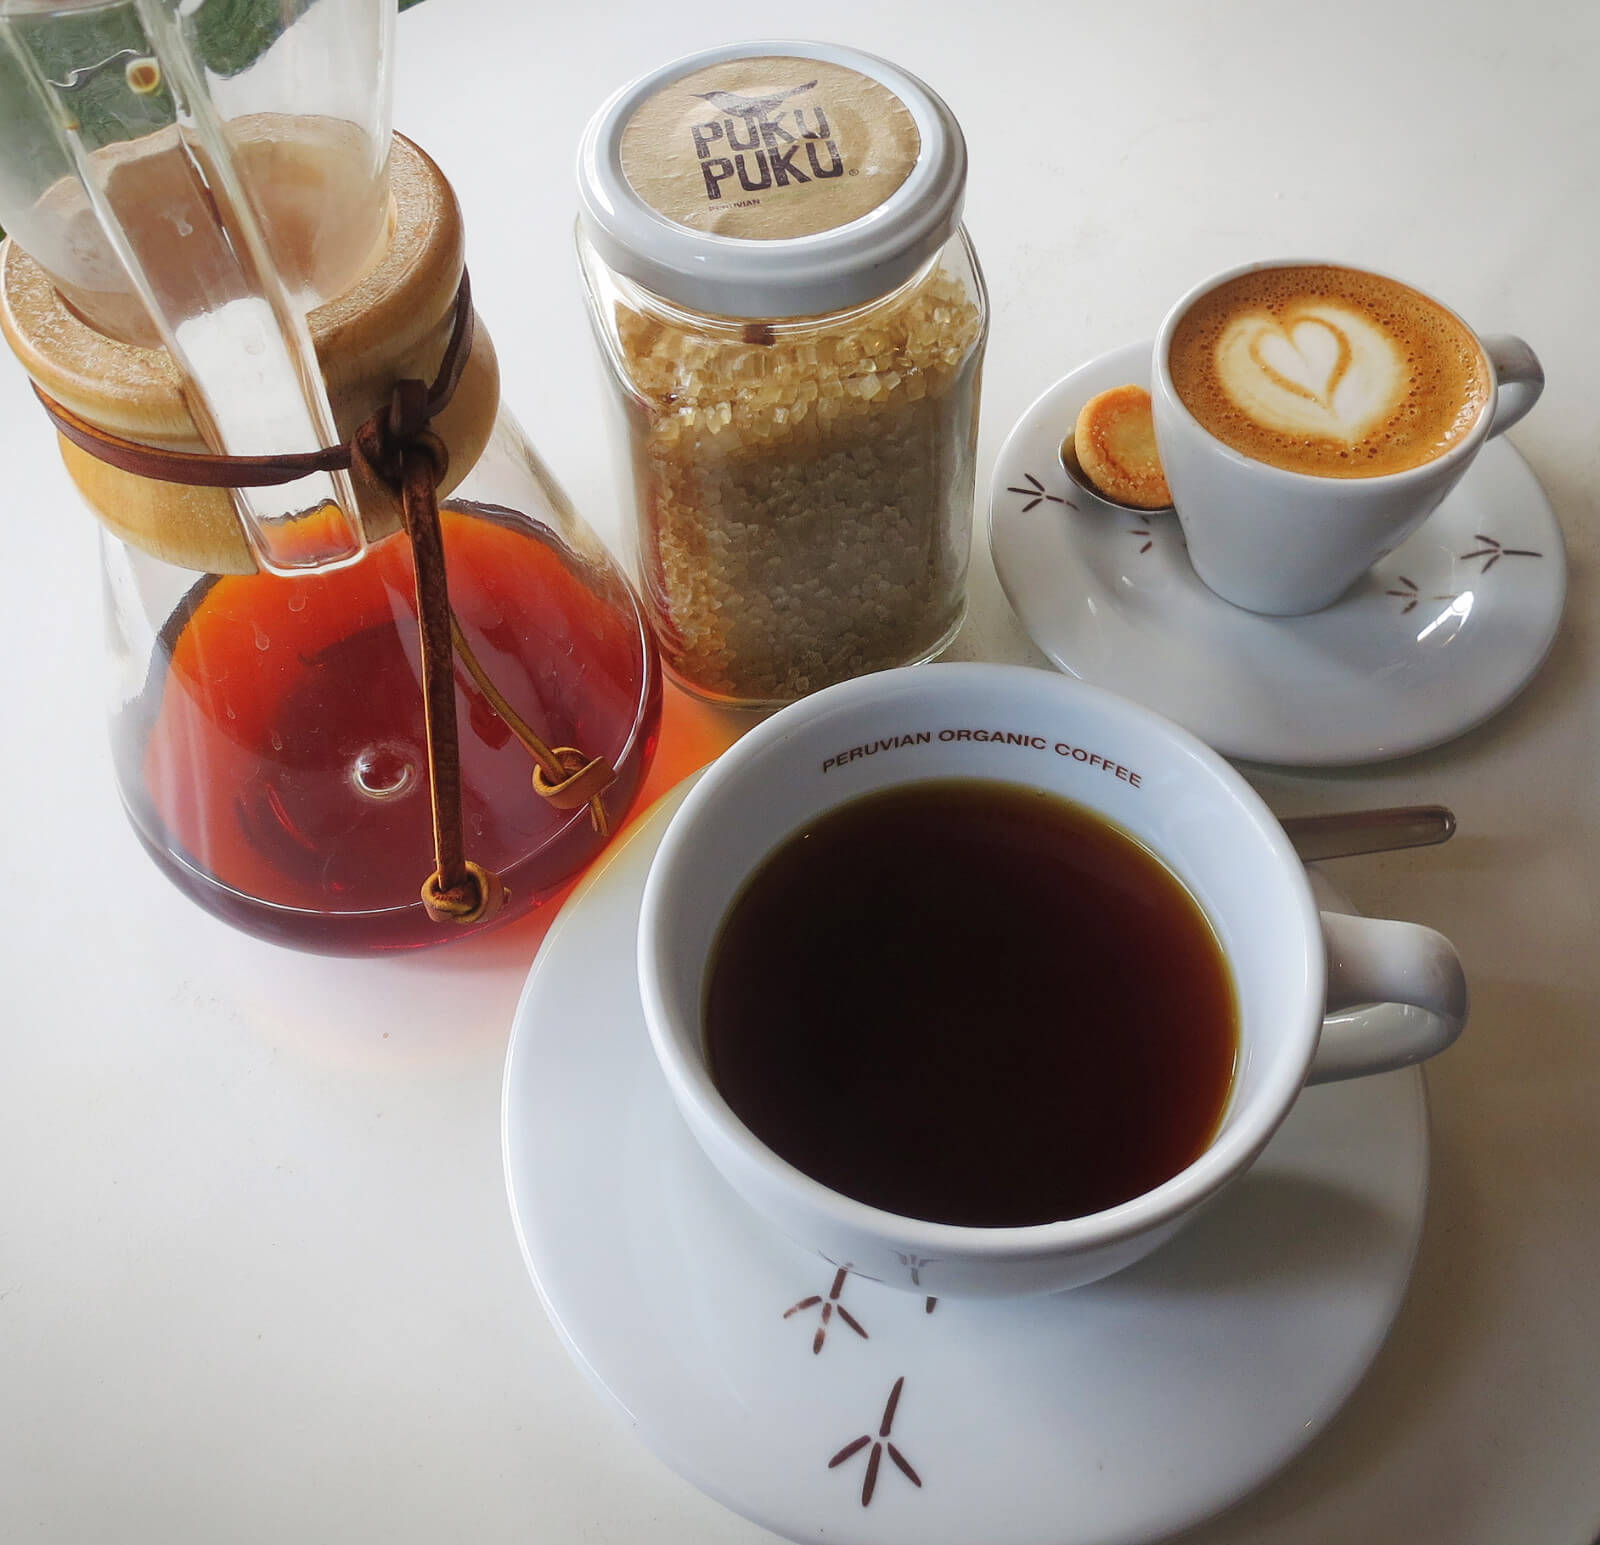 Delicious Peruvian specialty coffee and espresso at Puku Puku, a third wave coffee shop in Lima, Peru.